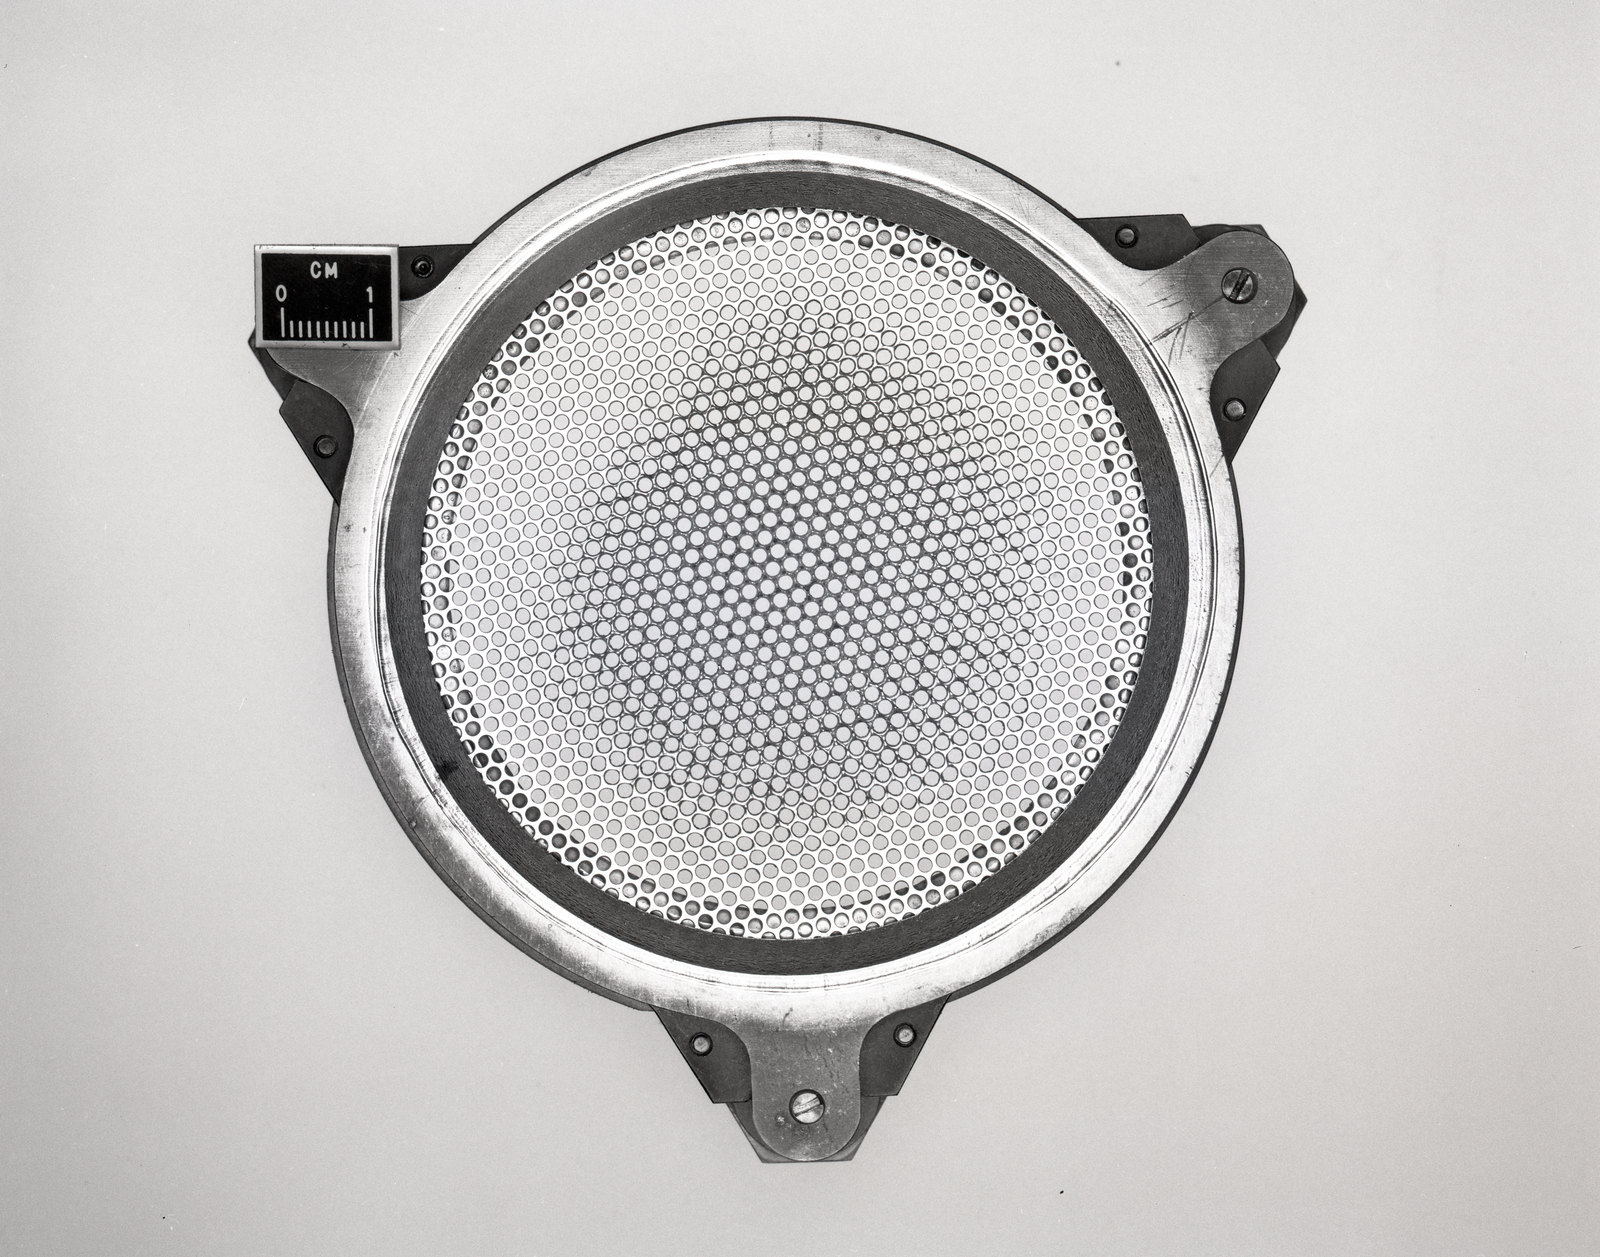 8 CM CENTIMETER ION THRUSTER COMPONENTS